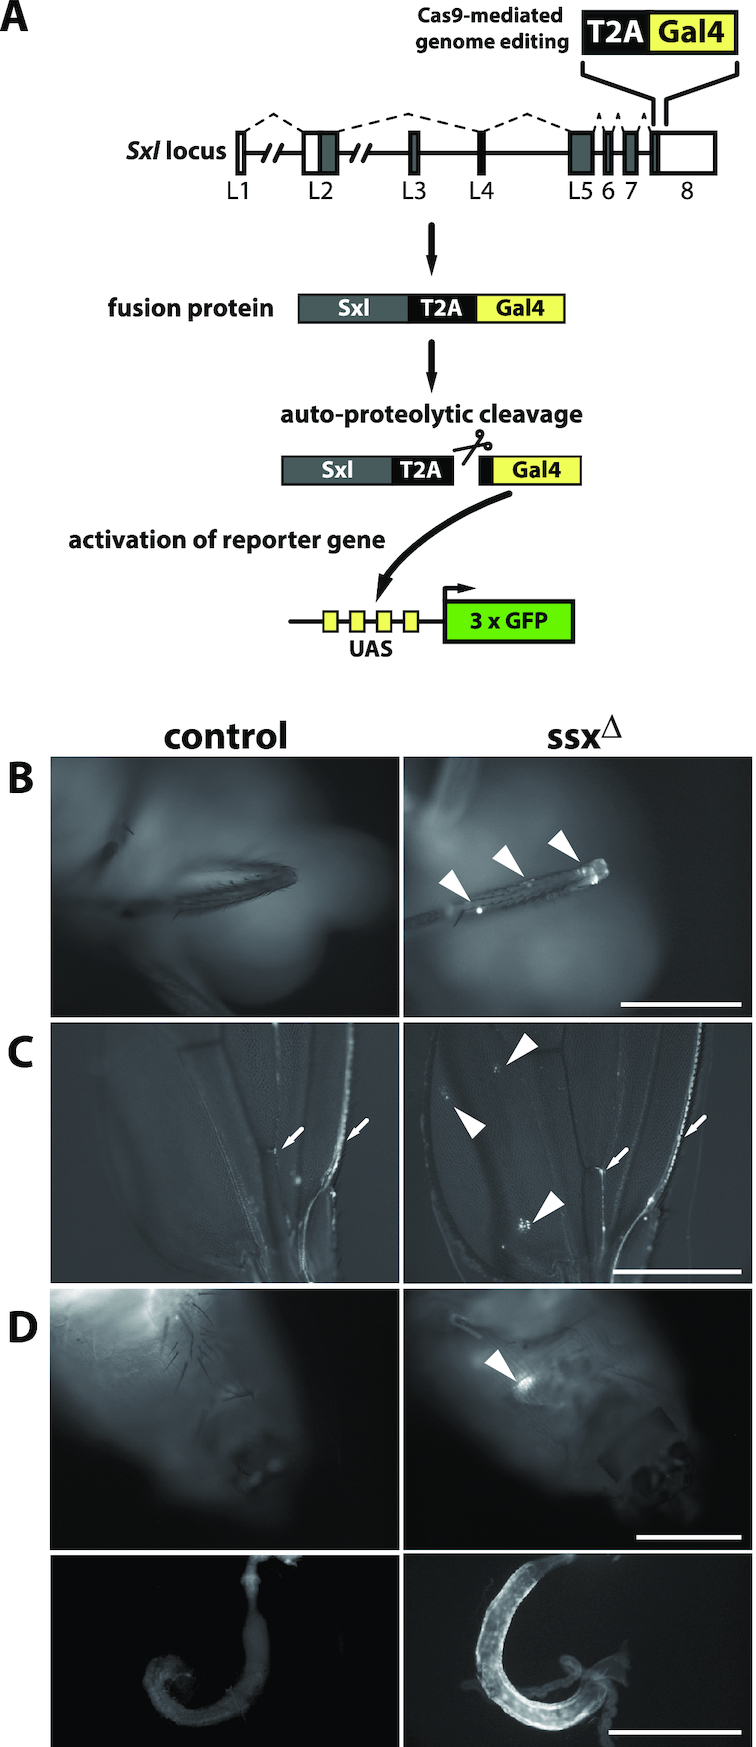 Male ssx knockout flies aberrantly express full-length Sxl protein. ( A ) Schematic representation of the reporter gene strategy employed to monitor full-length Sxl protein expression in flies. A T2A-Gal4 encoding sequence was fused to the 3′ end of the Sxl open reading frame (top) to allow expression of a Sxl-T2A-Gal4 fusion protein upon productive splicing (female splicing pattern indicated by dashed lines). Auto-proteolytic cleavage of the T2A sequence in the fusion protein releases the C-terminal Gal4 moiety which activates expression of a GFP reporter gene. ( B–D ) GFP expression in Sxl-T2A-Gal4, UAS-GFP (panel B) and Sxl-T2A-Gal4, UAS-Stinger flies (panels C and D). Control flies with an intact ssx locus are shown on the left, ssx Δ flies in the panels on the right. Arrowheads indicate GFP-positive cells or clonal cell populations in the tibia of the metathoracic leg (panel B) and the 3 rd posterior cell of the wing (panel C) or the midgut (panel D; top: ventral view of the abdomen with the GFP signal visible through the cuticula, bottom: hindgut after manual dissection of the animal). Arrows in panel C indicate GFP-positive nerve projections and neural cell bodies in the L1 and L3 veins of the wing. Scale bars: 0.5mm.